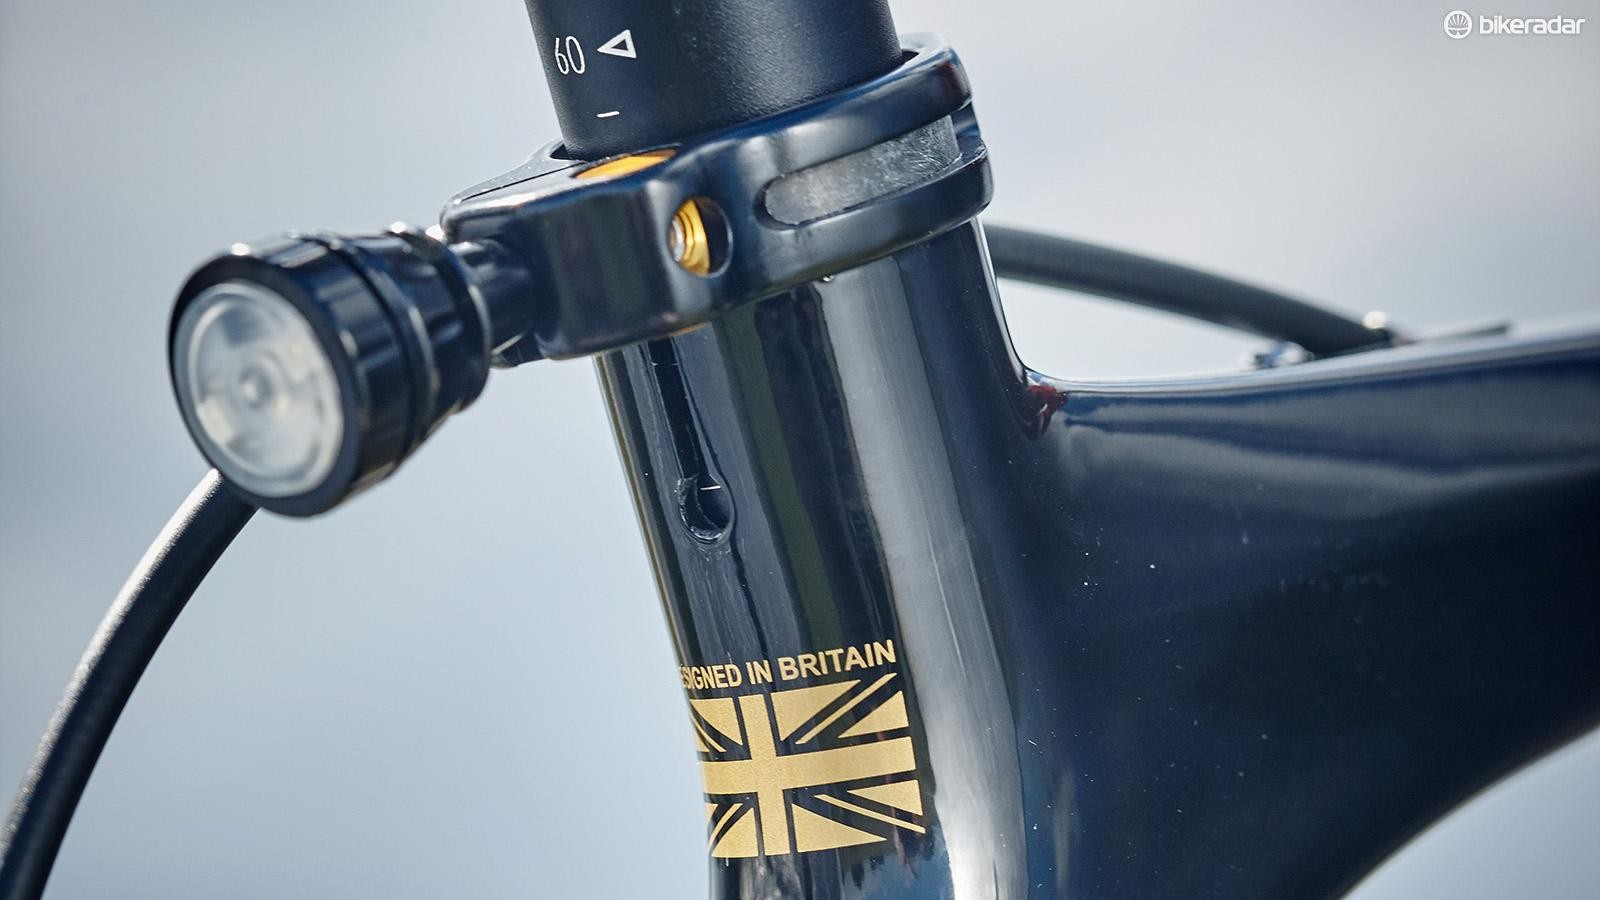 A neat LED rear light is integrated into the seatpost clamp